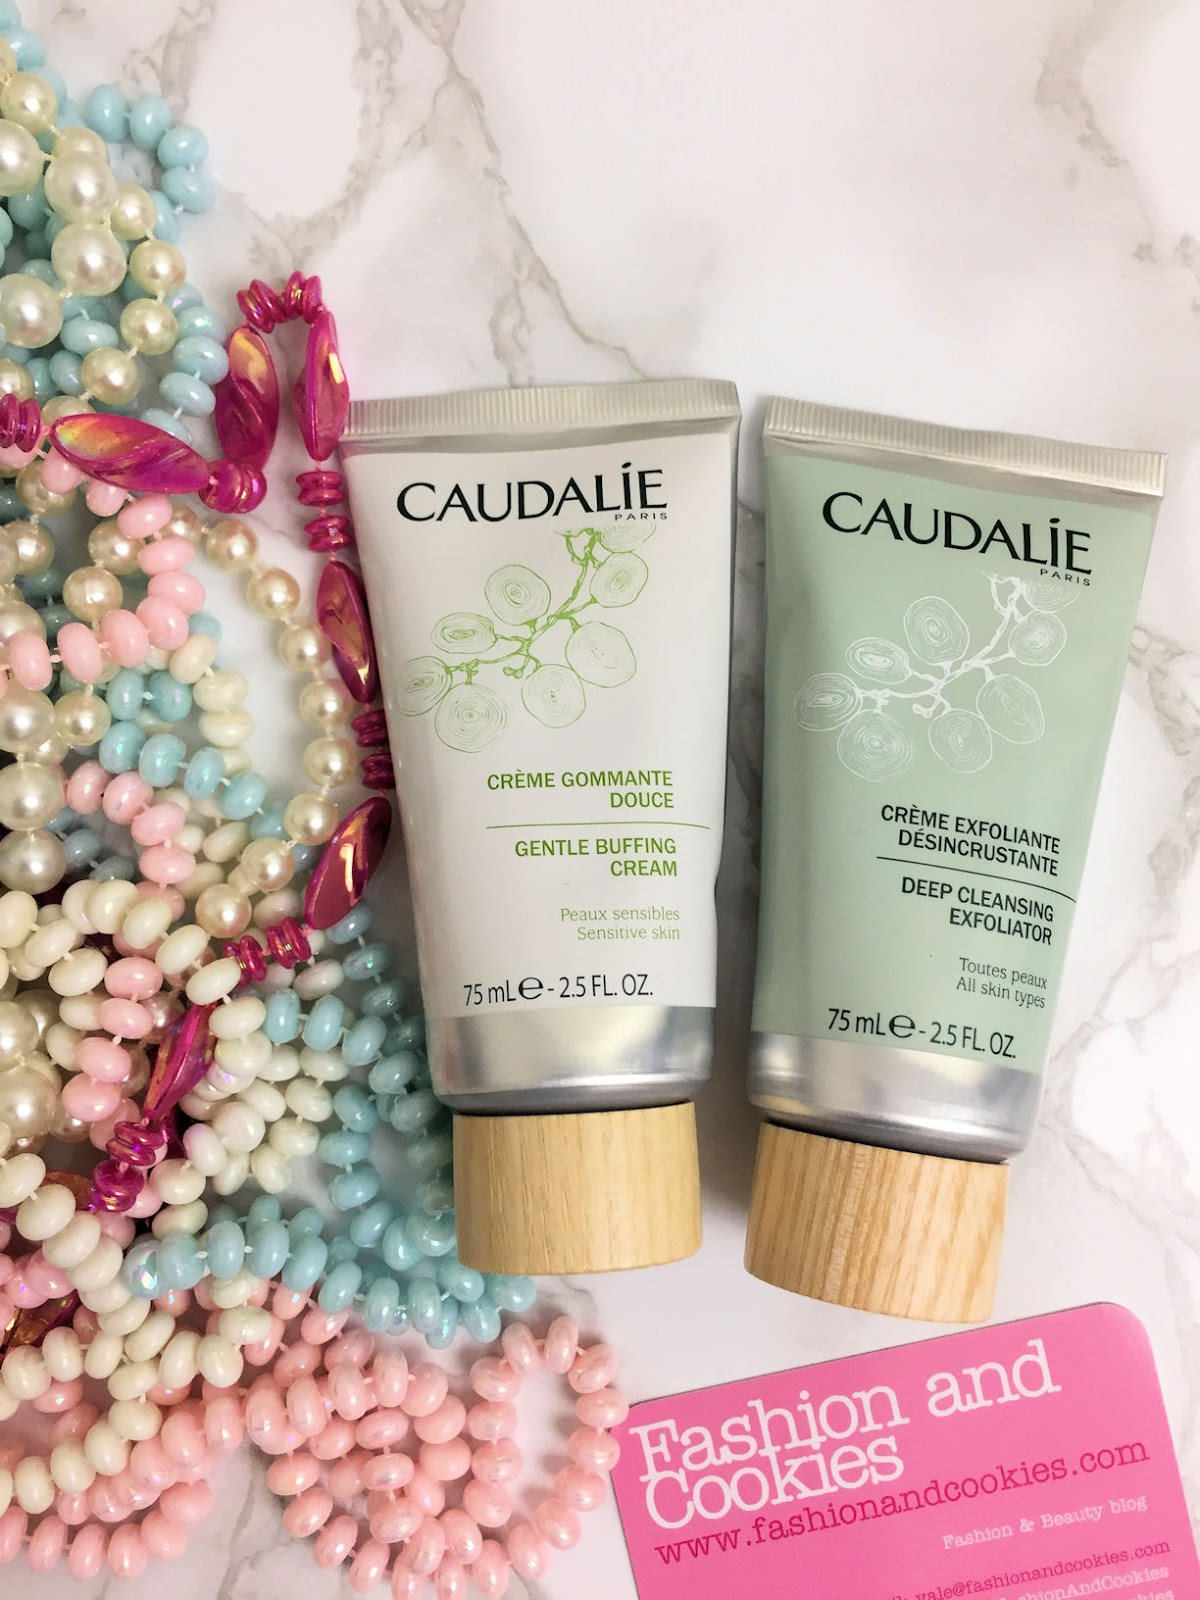 Caudalie Gommage douce e exfoliante su Fashion and Cookies beauty blog, beauty blogger